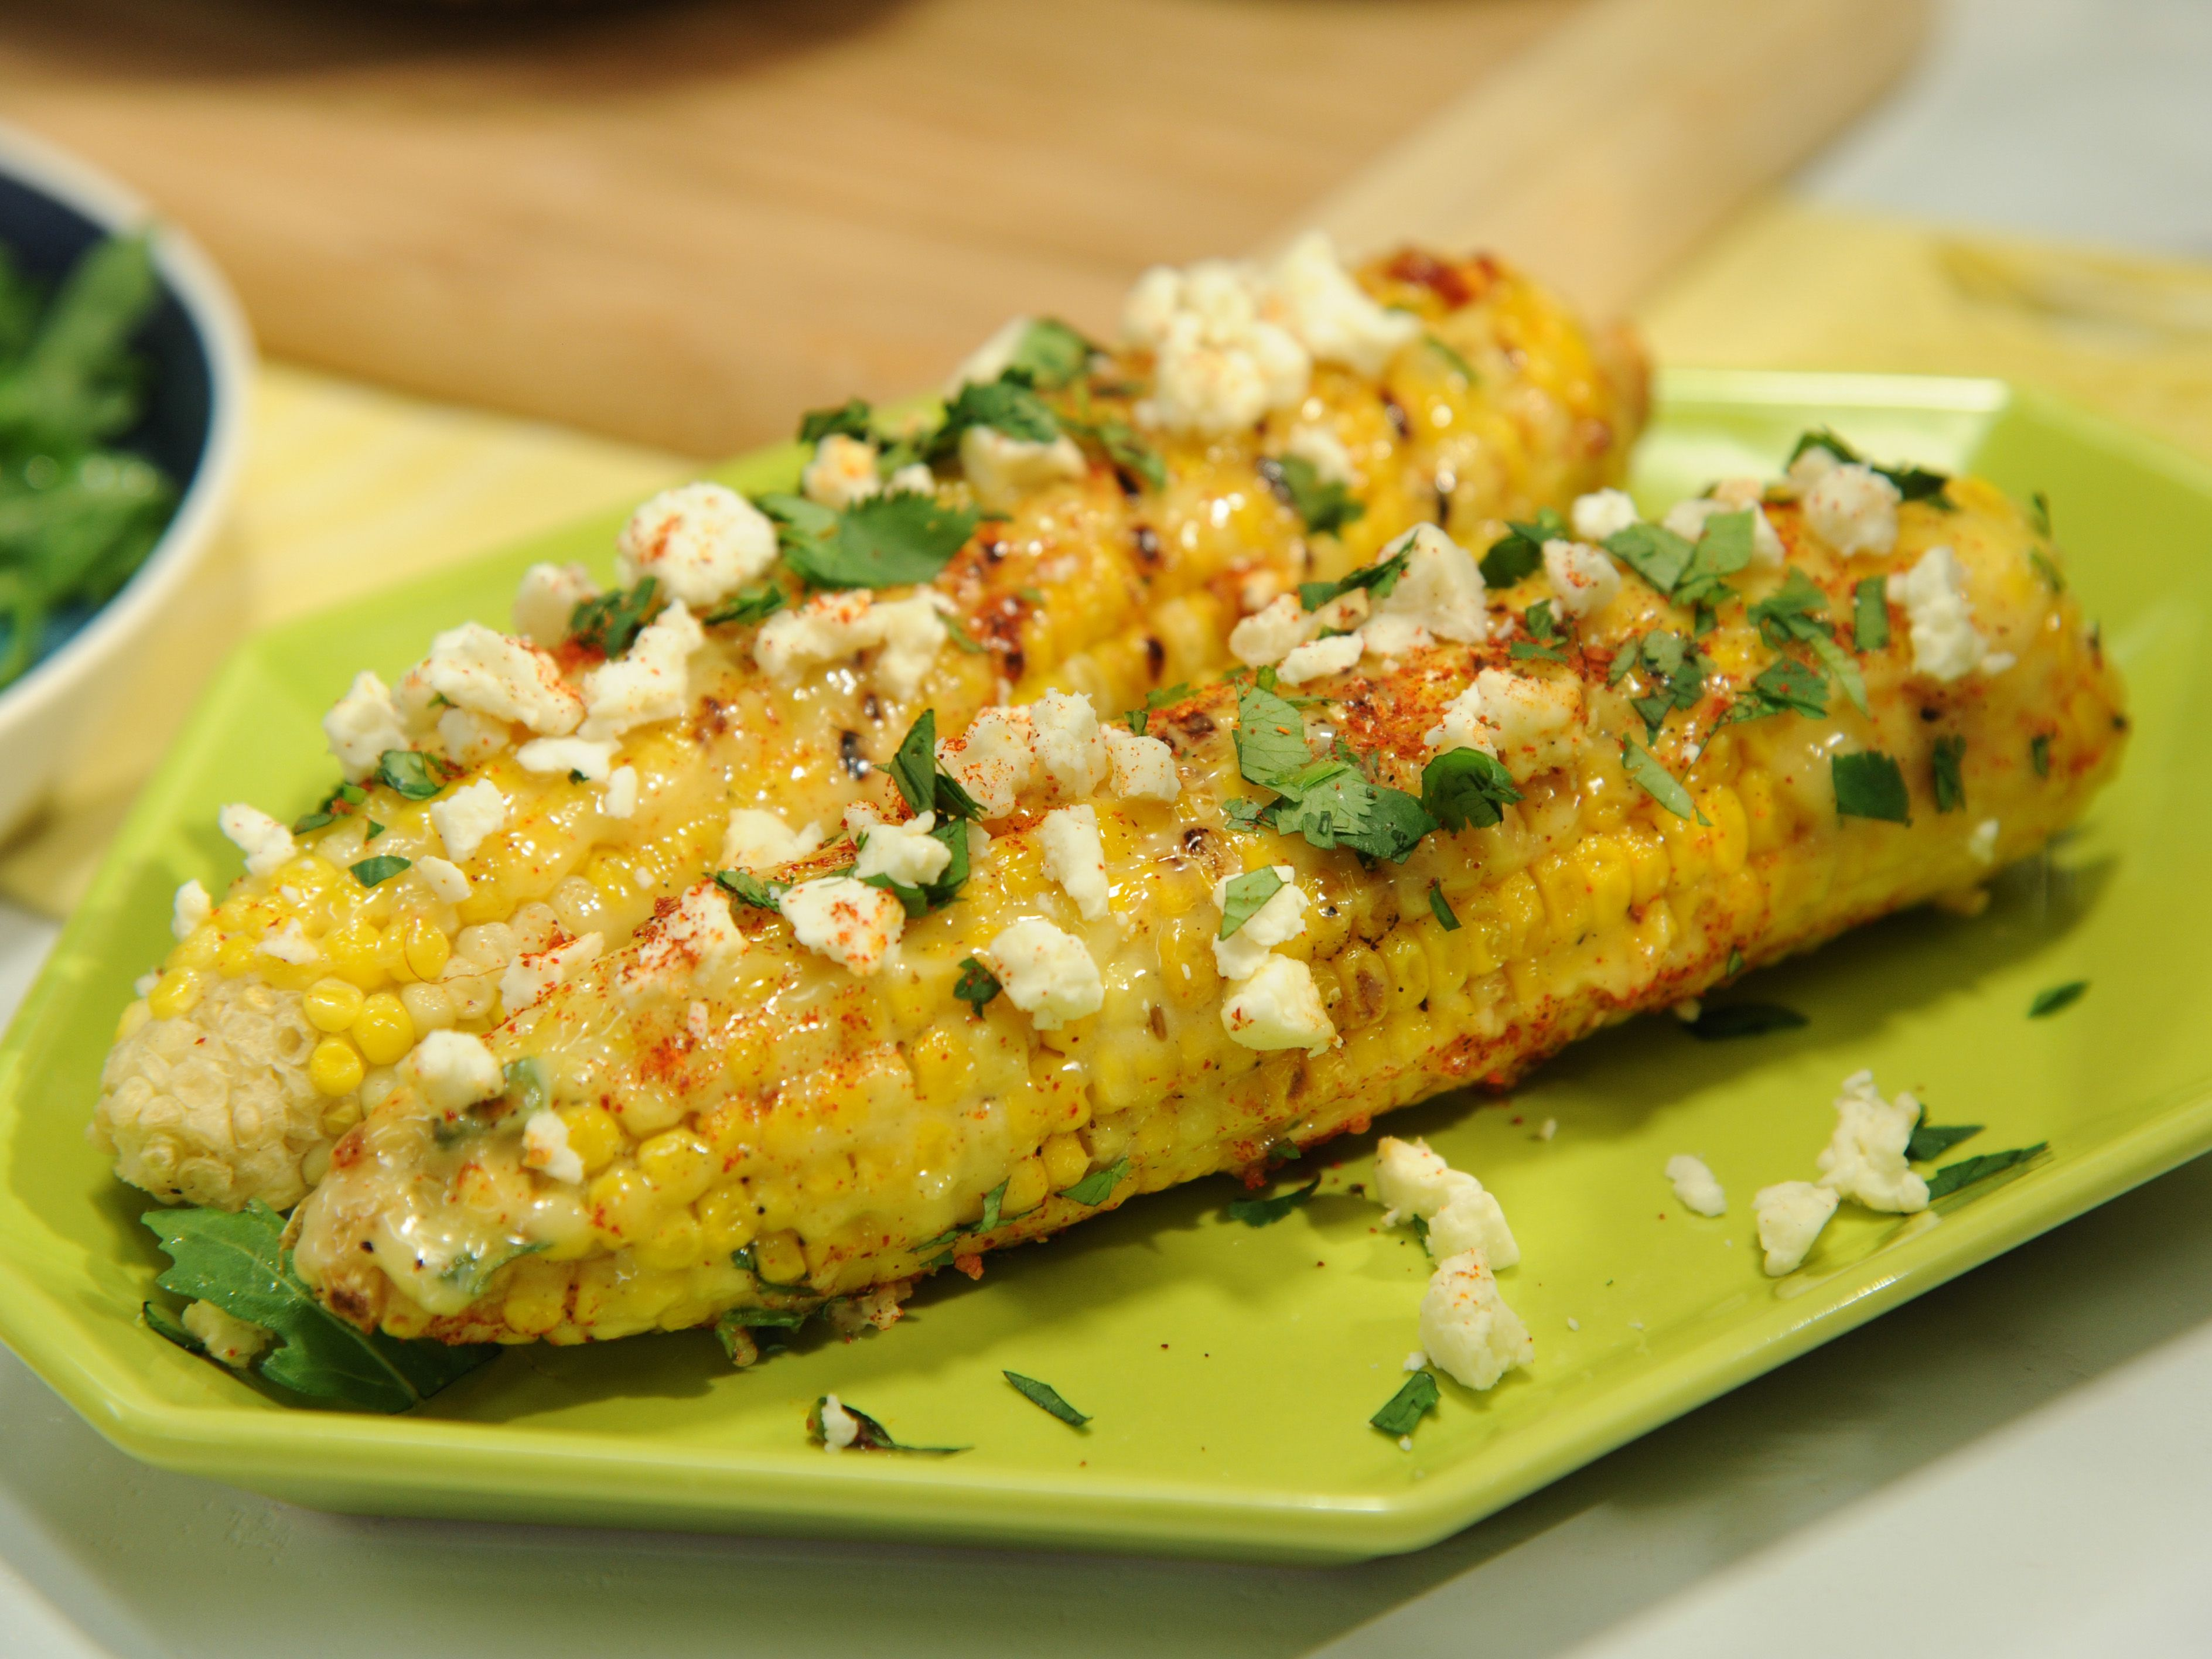 May lotes recipe jeff mauro mexican style corn and corn recipe recipe jeff mauro food network foodnetwork forumfinder Images